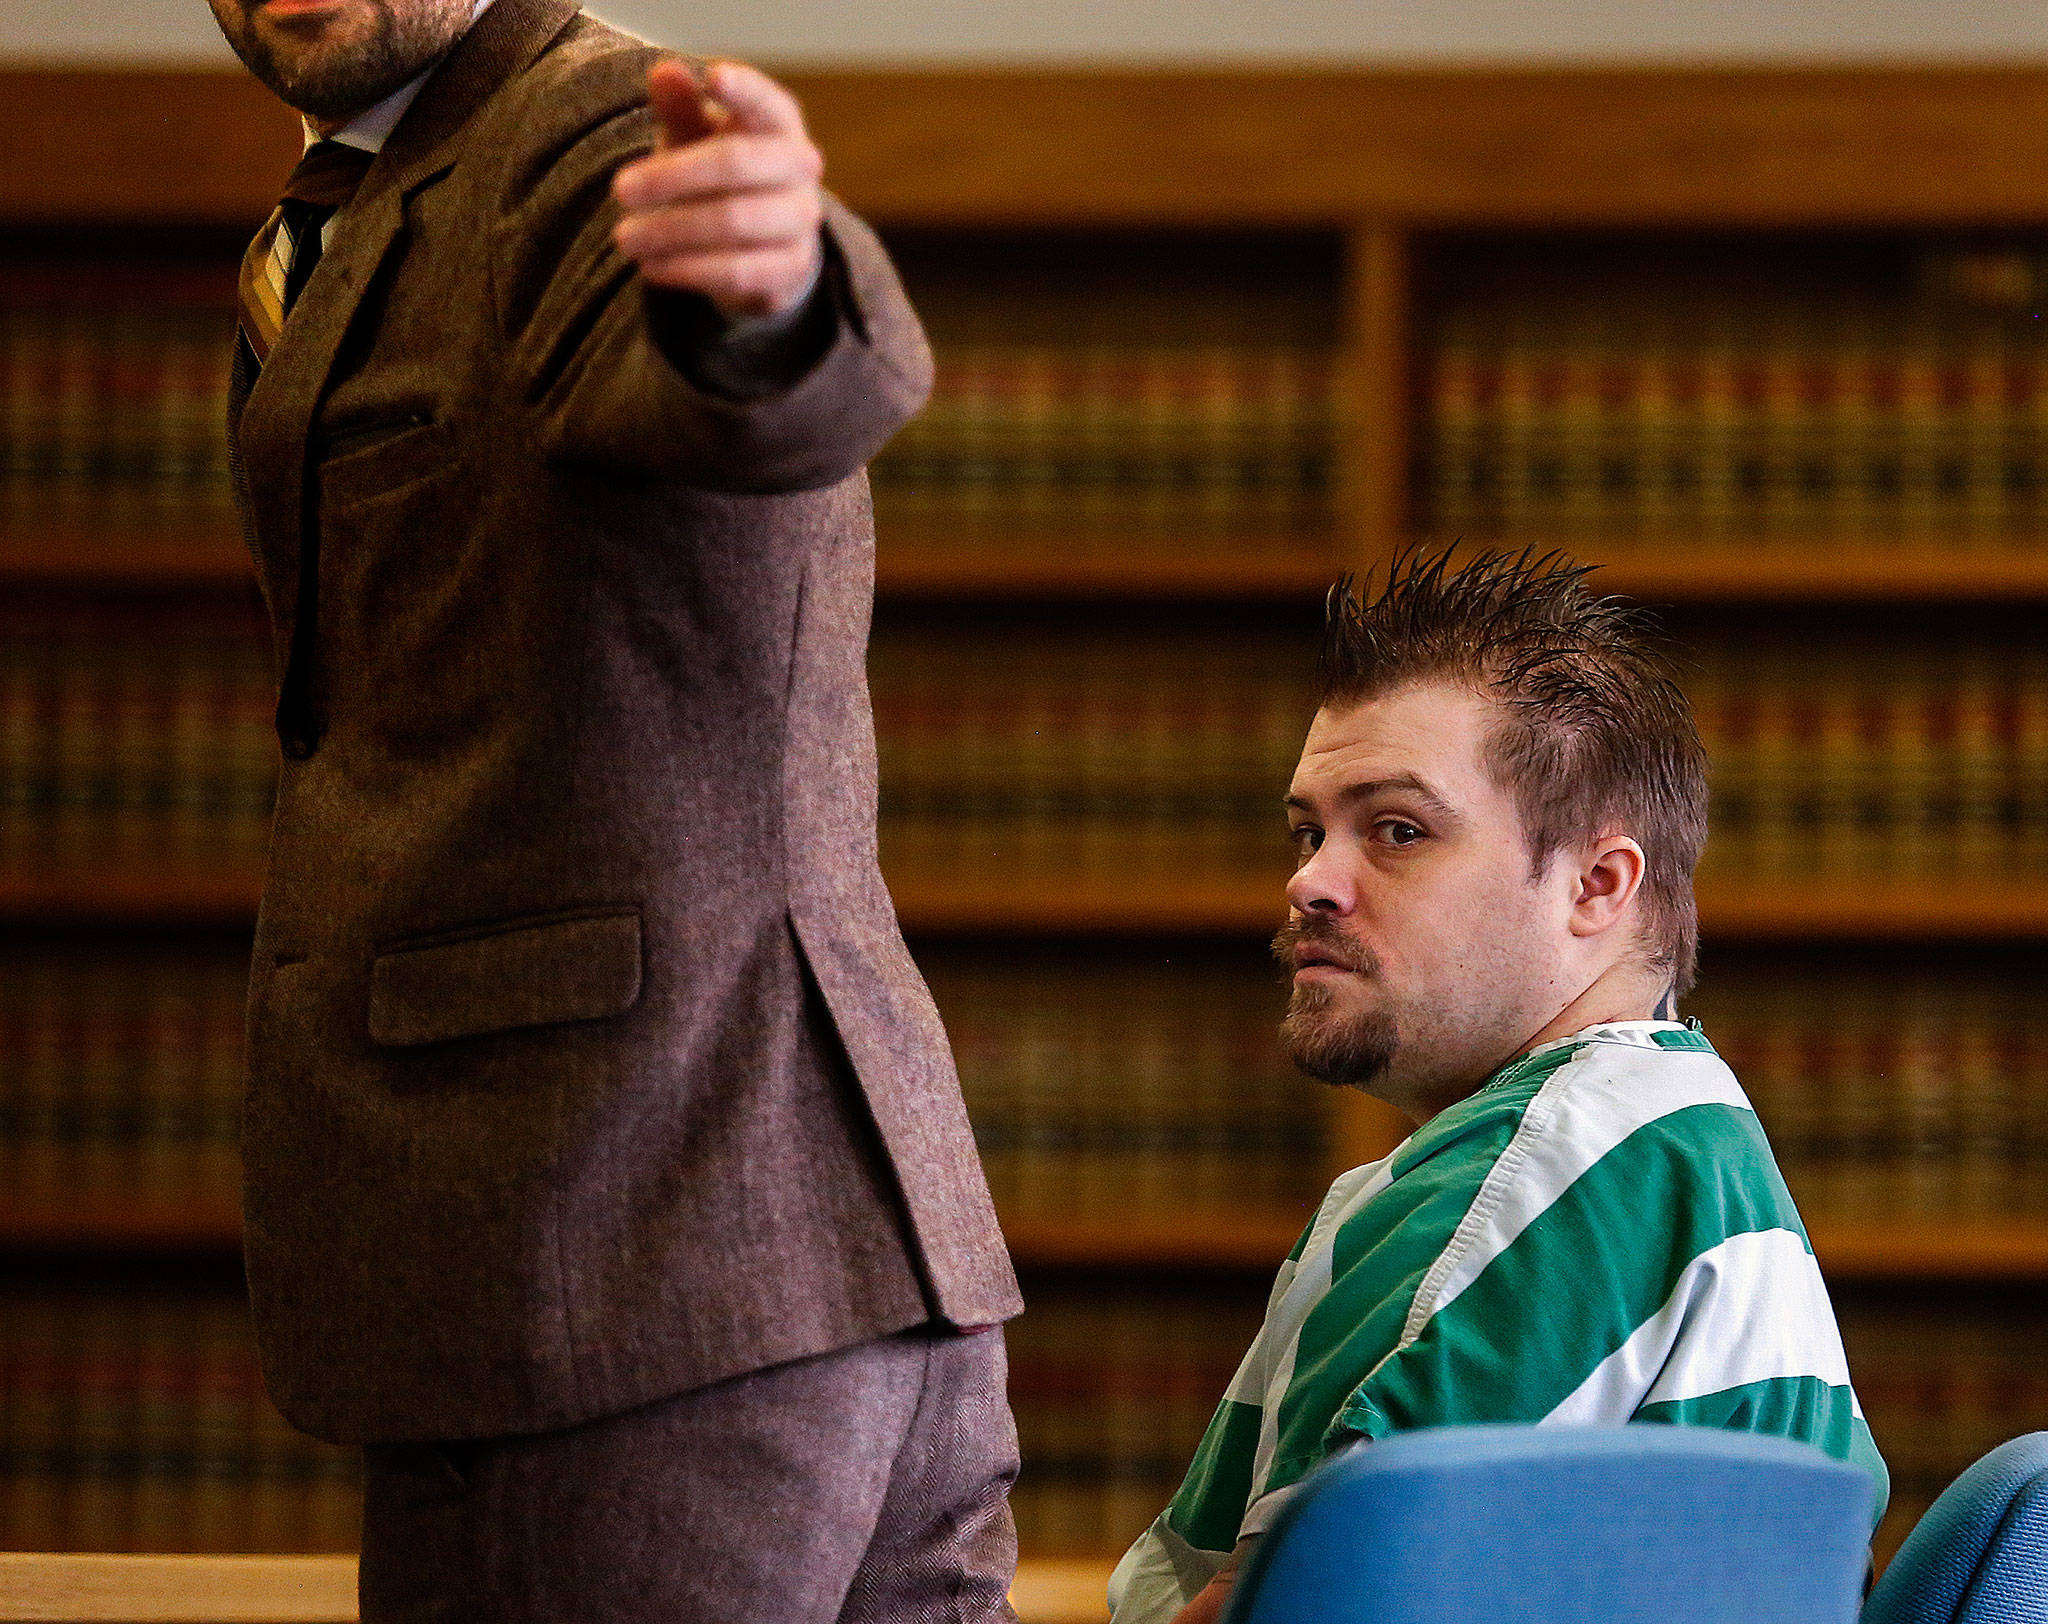 Public defender Jason Schwarz (left) directs a courtroom deputy as he and convicted violent rapist Daniel Miltenberger prepare to approach the bench during Miltenberger's sentencing hearing in February. (Dan Bates / Herald file)